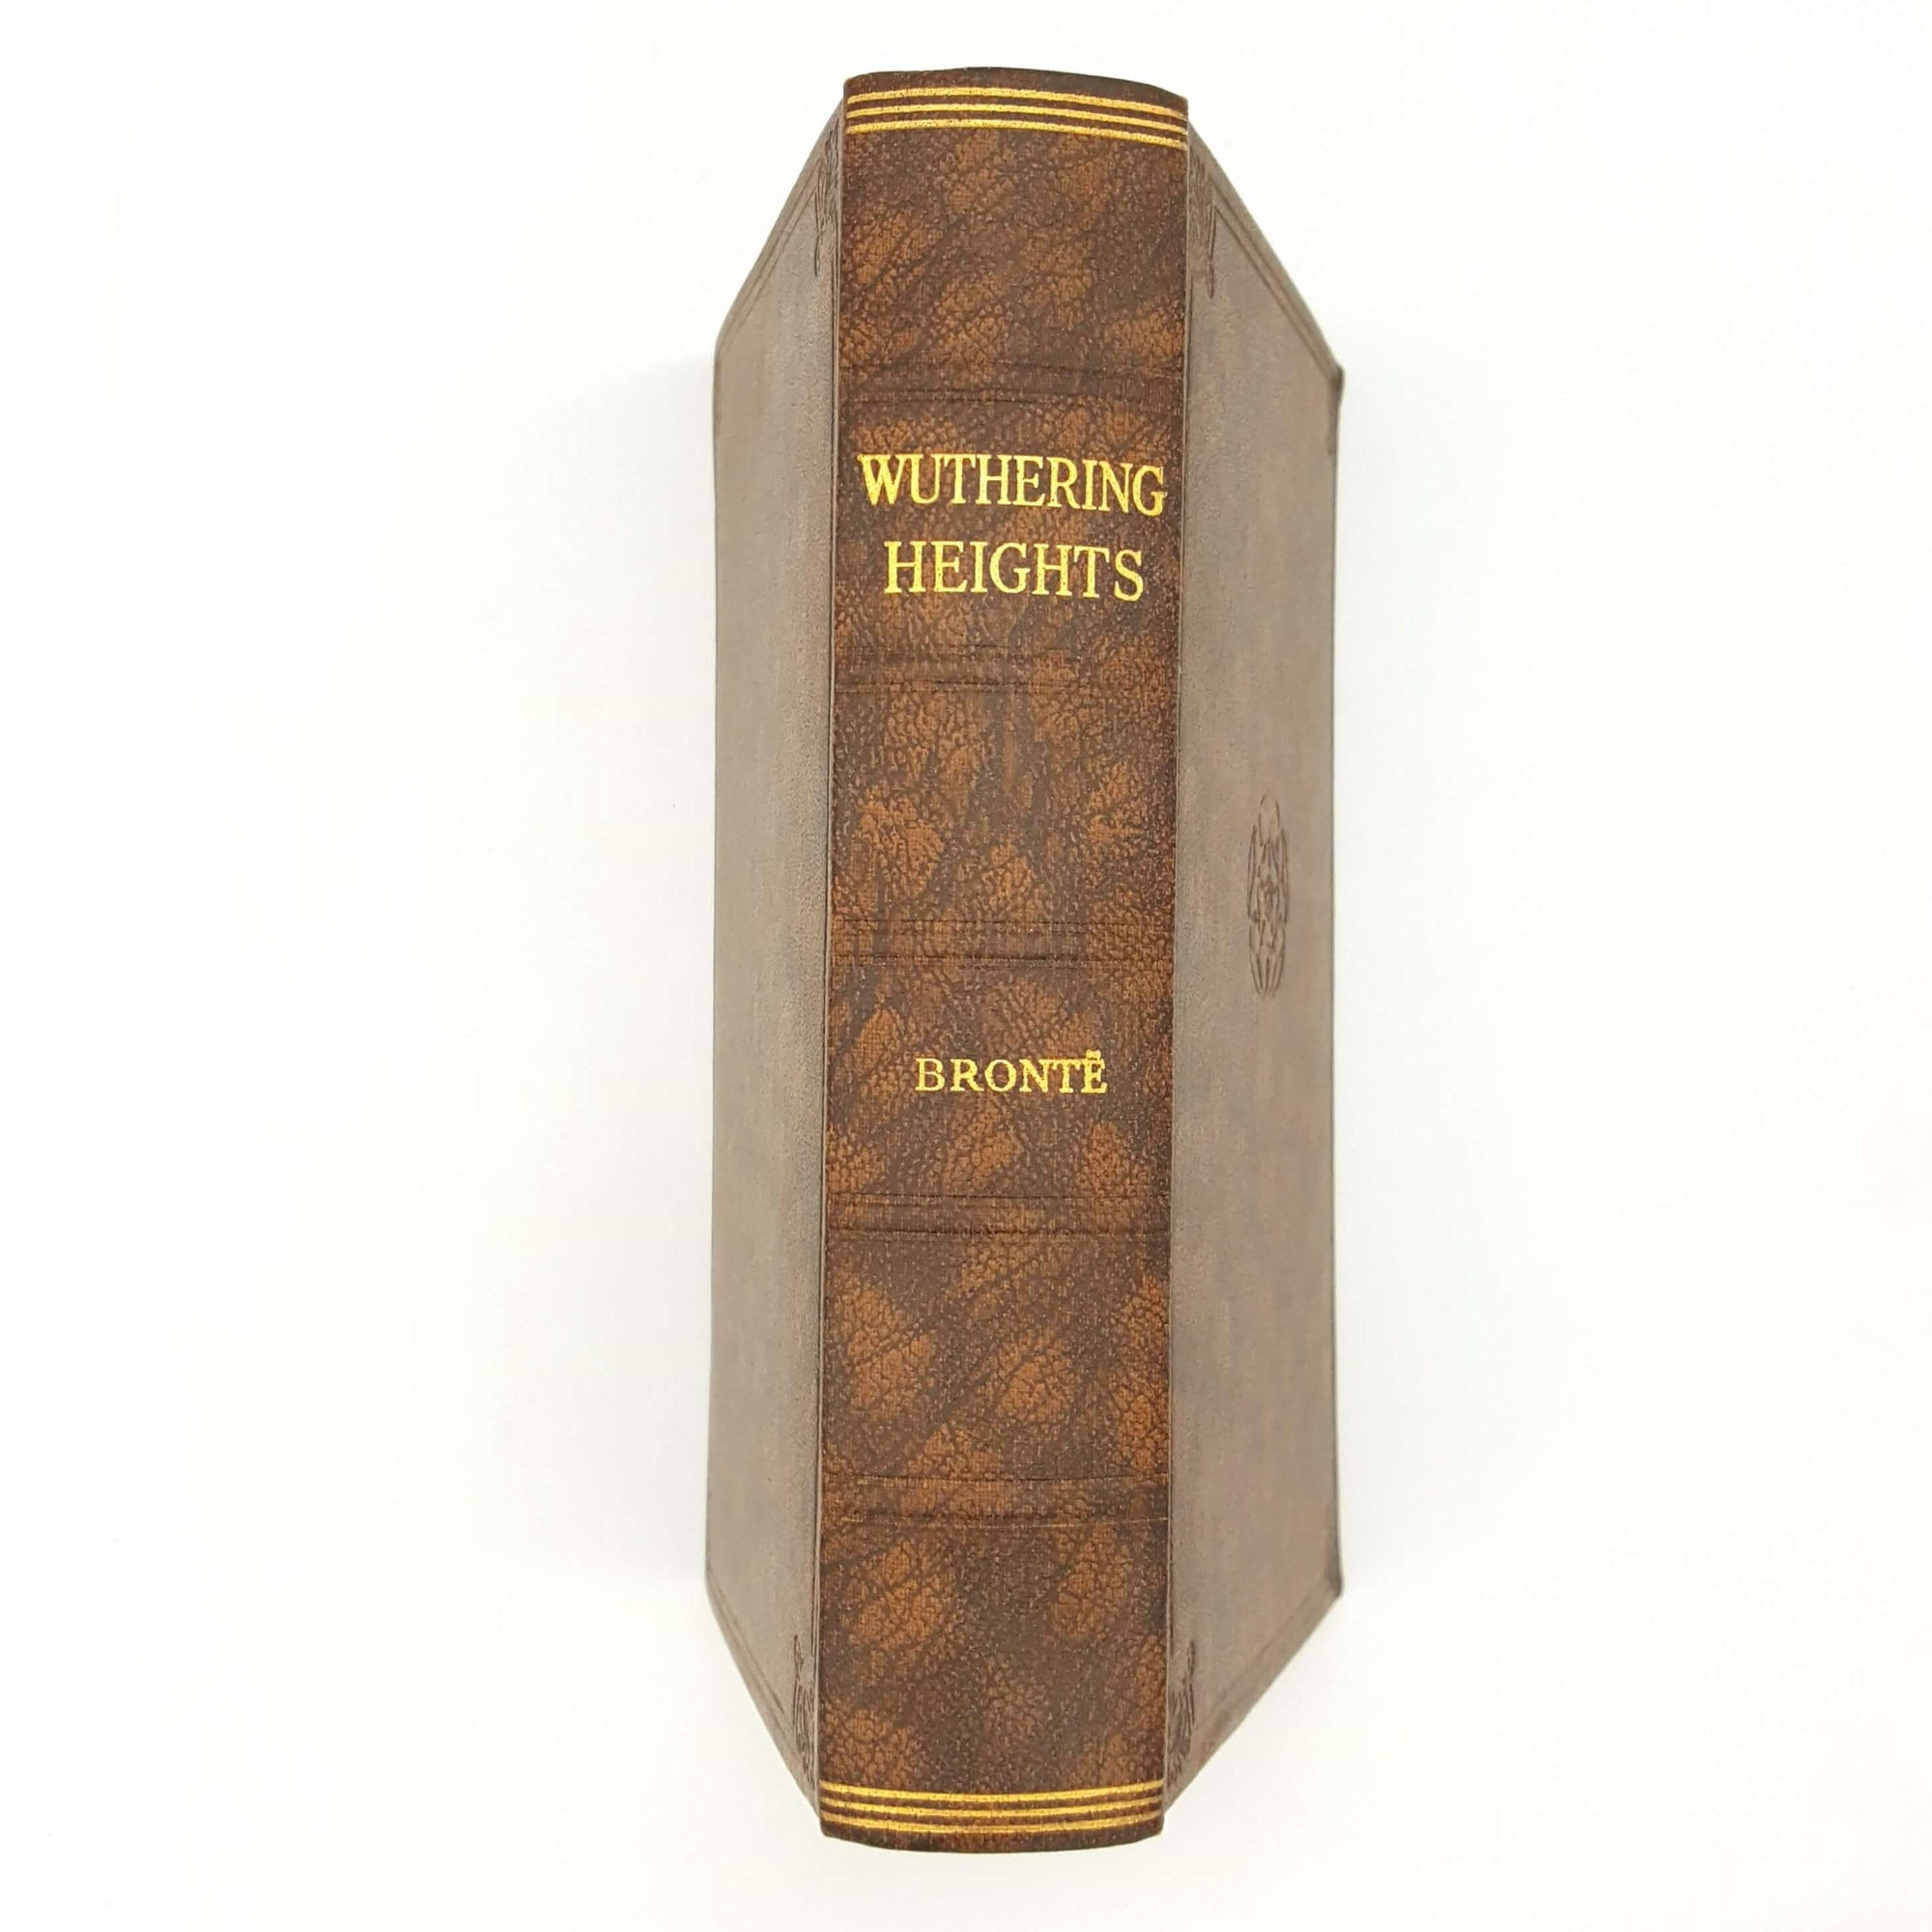 Emily Brontë's Wuthering Heights 1935 - Odhams Ltd Country House Library